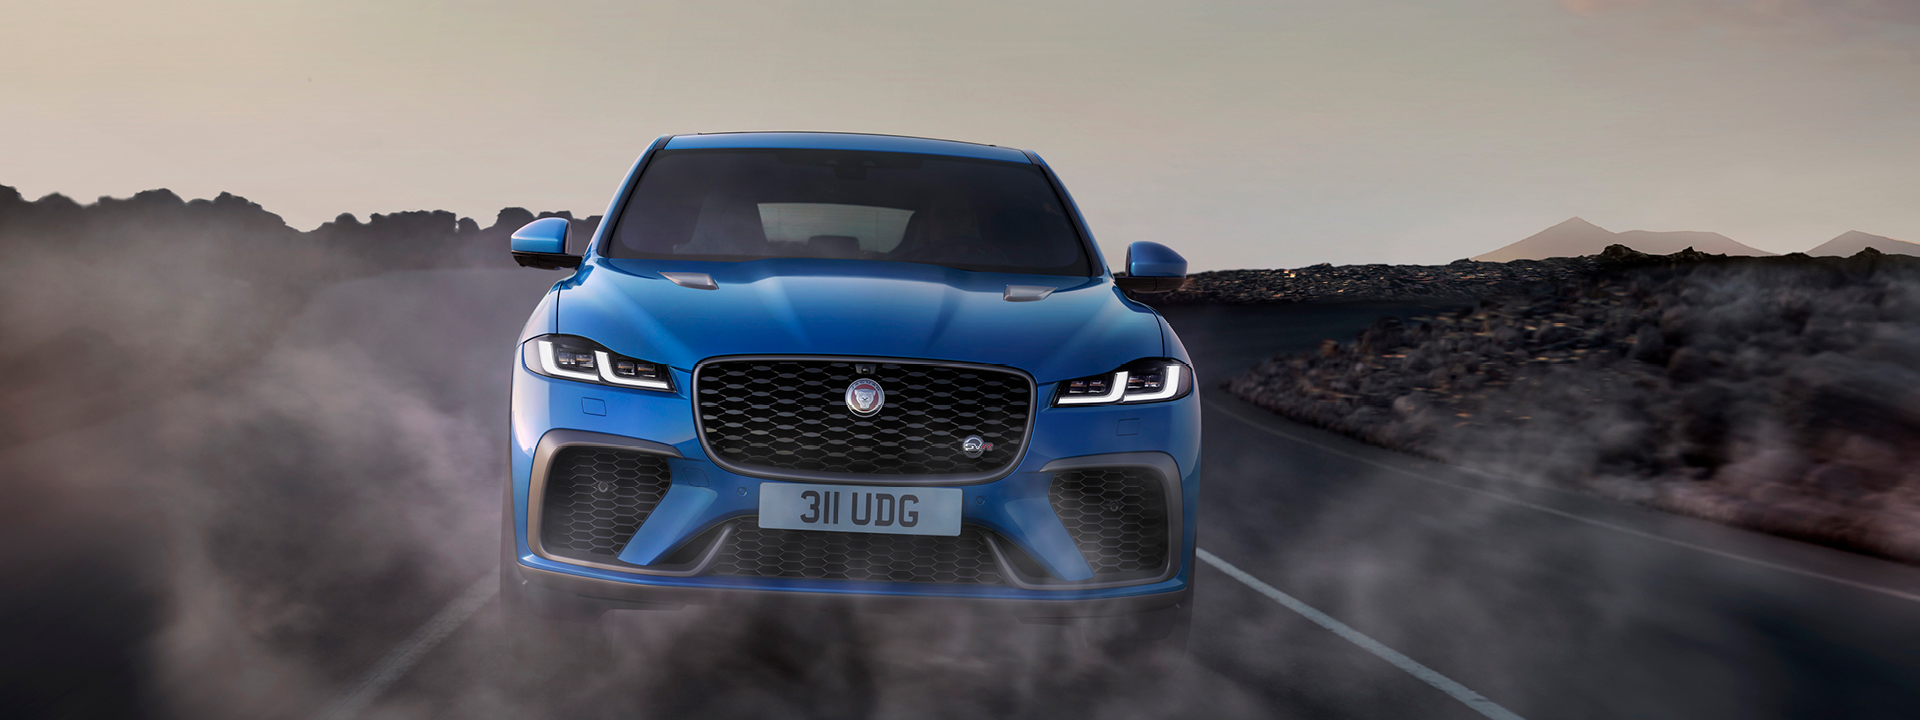 2021 F-PACE S